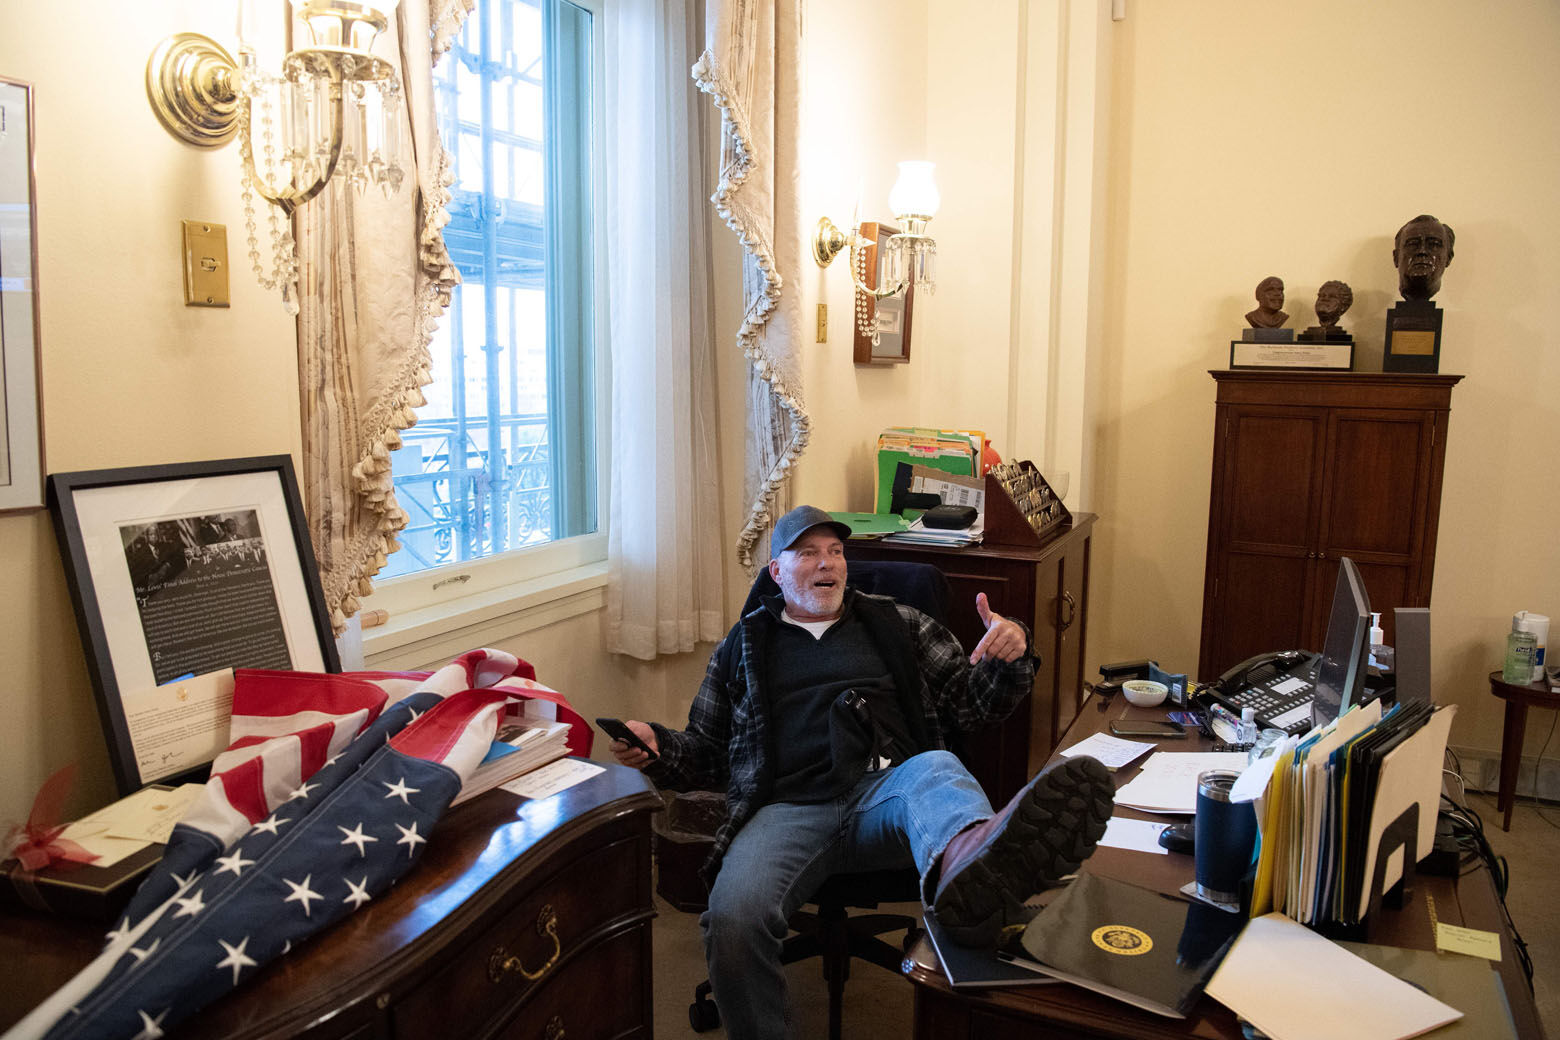 A supporter of US President Donald Trump sits inside the office of US Speaker of the House Nancy Pelosi as he protest inside the US Capitol in Washington, DC, January 6, 2021. - Demonstrators breeched security and entered the Capitol as Congress debated the a 2020 presidential election Electoral Vote Certification. (Photo by SAUL LOEB / AFP) (Photo by SAUL LOEB/AFP via Getty Images)